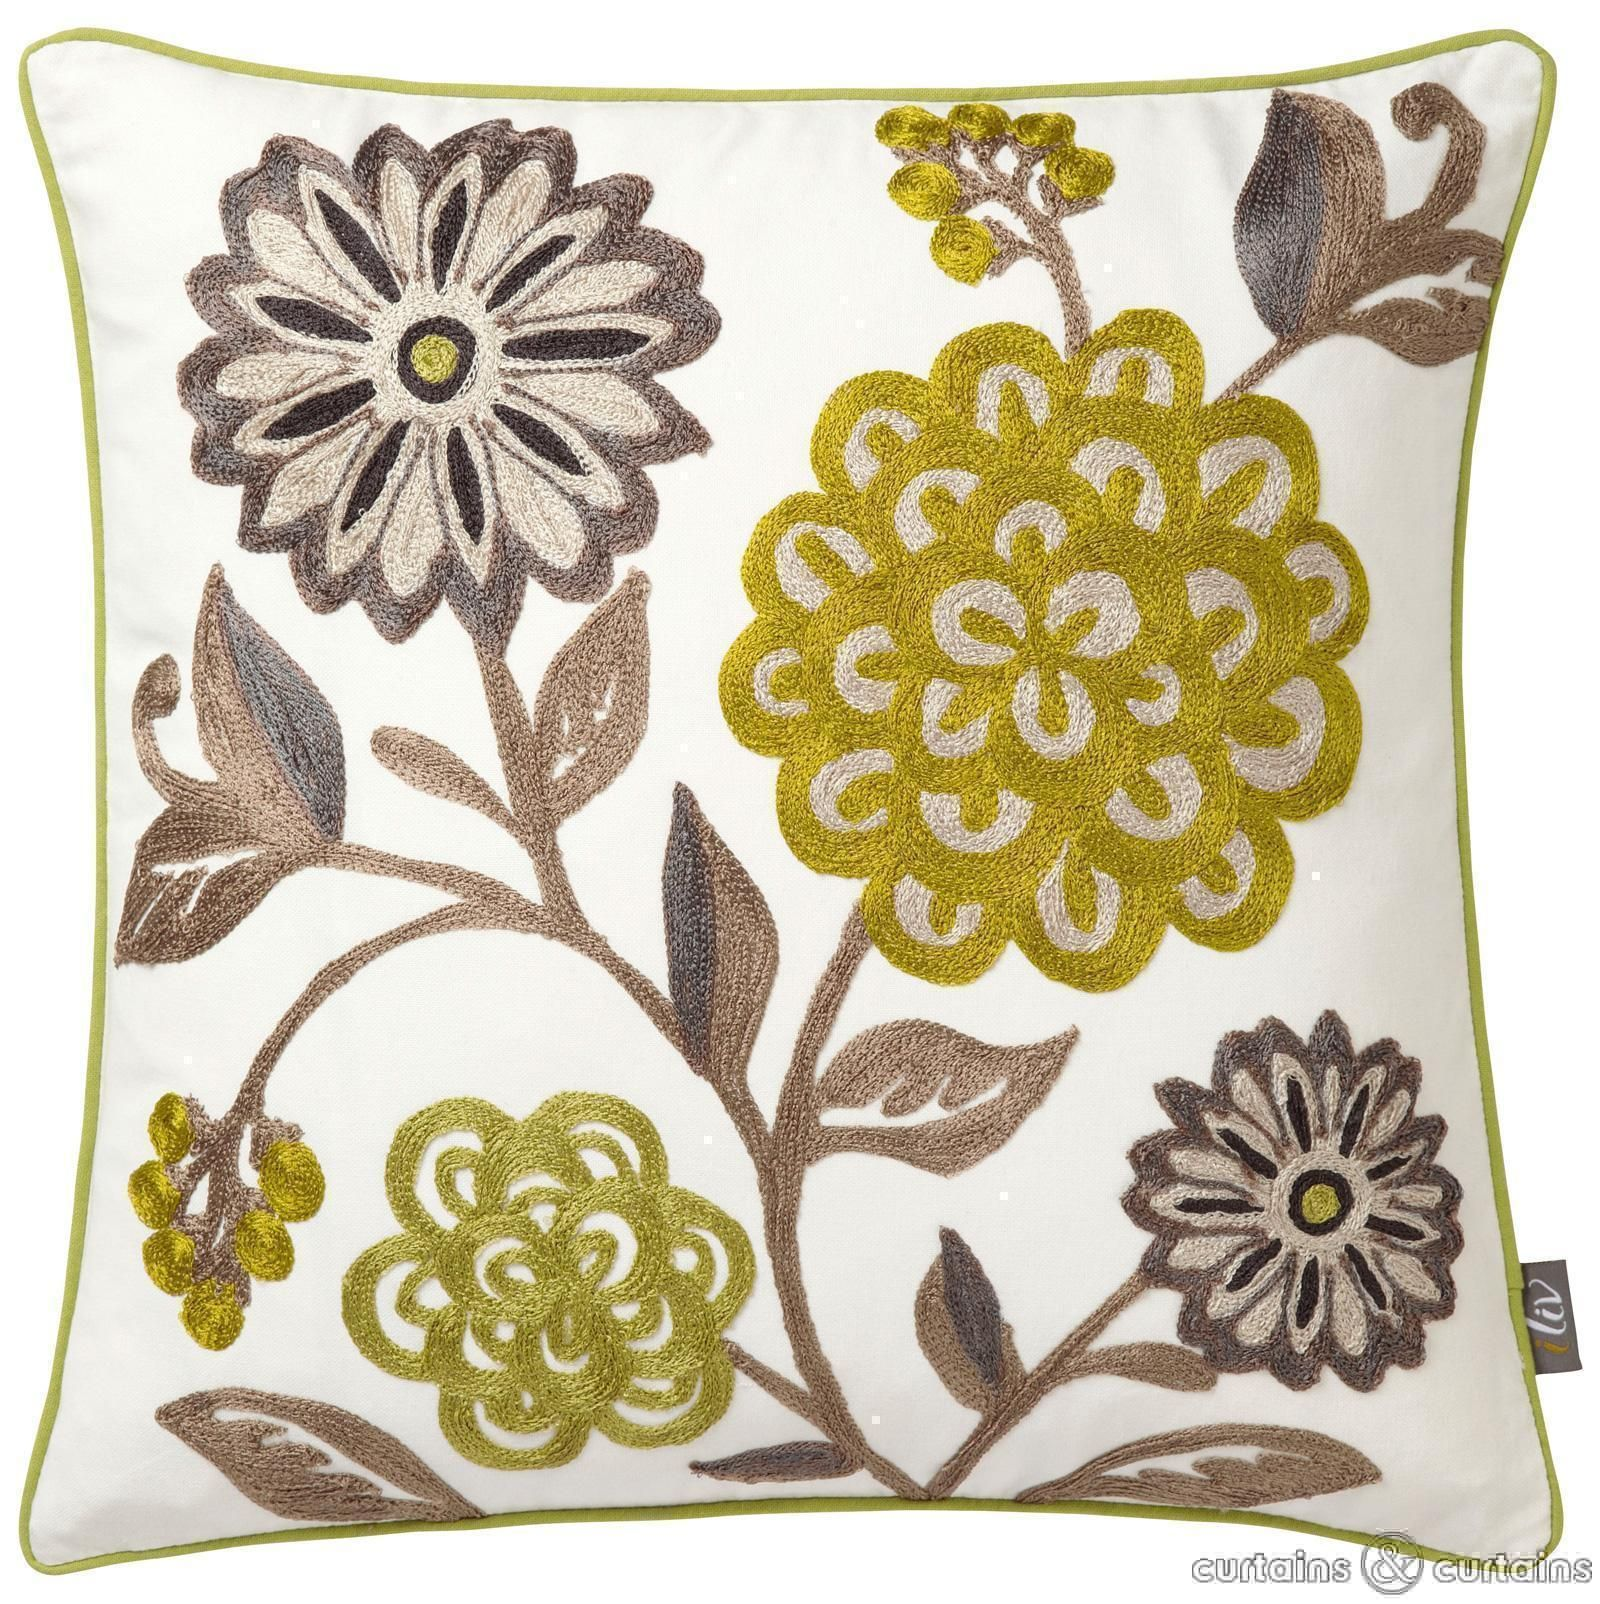 Floral wonders embroidered cushion in woodland